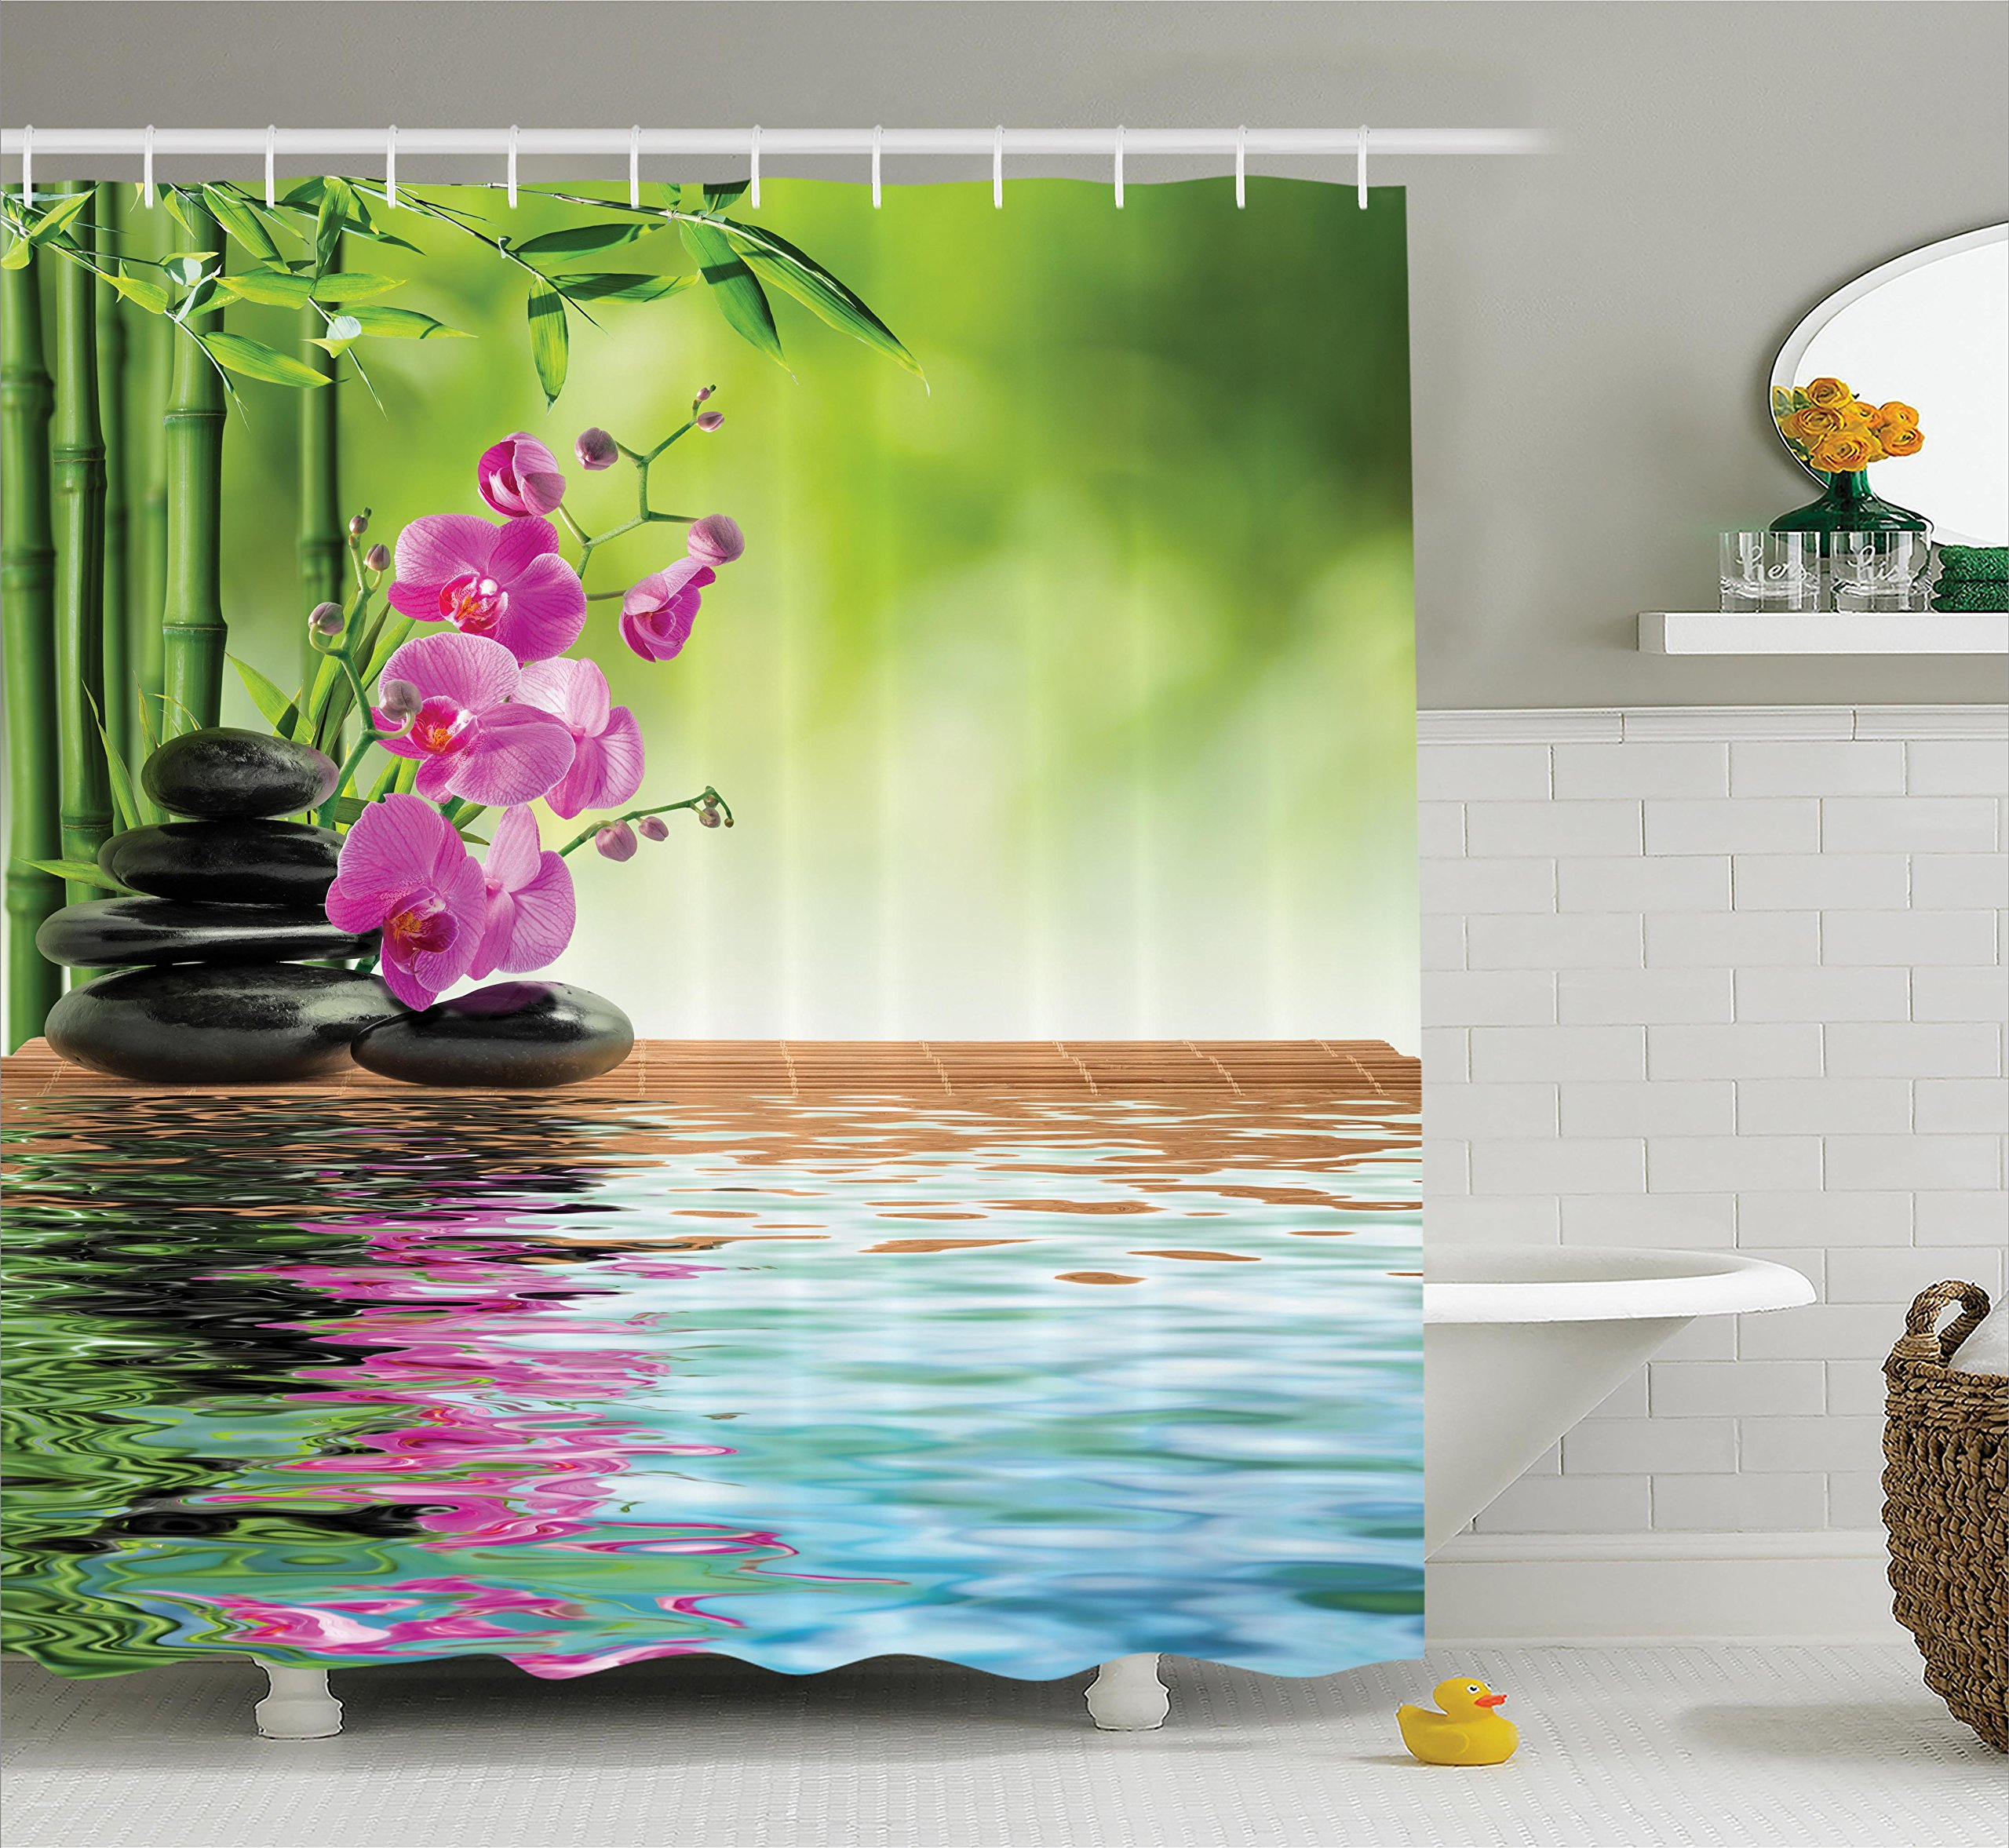 Ambesonne Spa Decor Shower Curtain Set, Orchid Flower Stone Oriental Culture Spirituality Wellness Tropical Holiday, Bathroom Accessories, 69W X 70L Inches